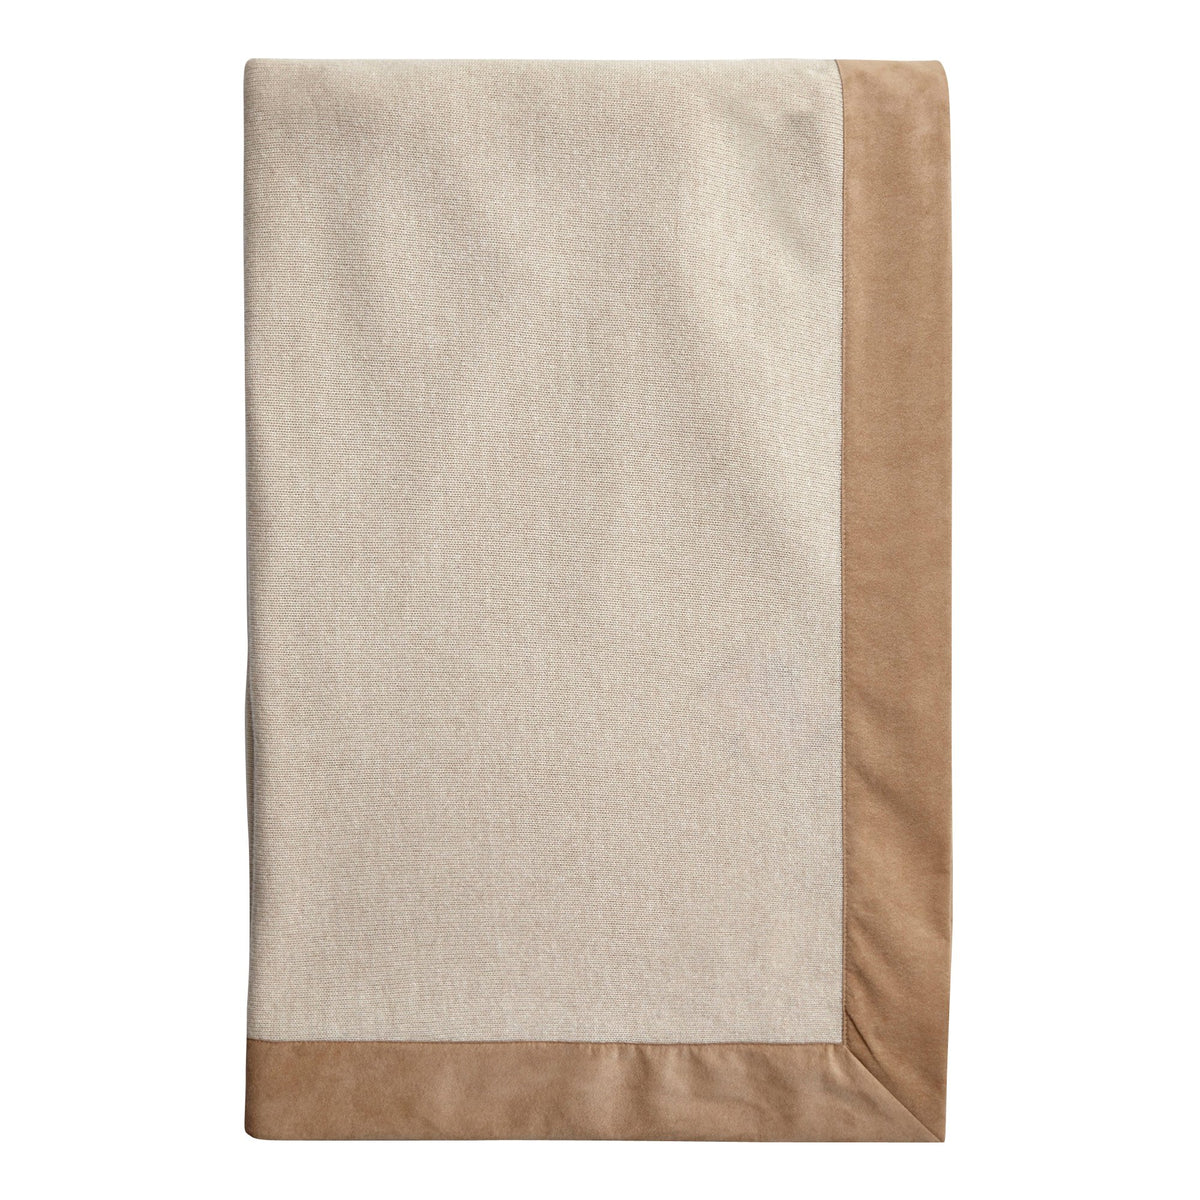 Portofino Cashmere Blend Throw